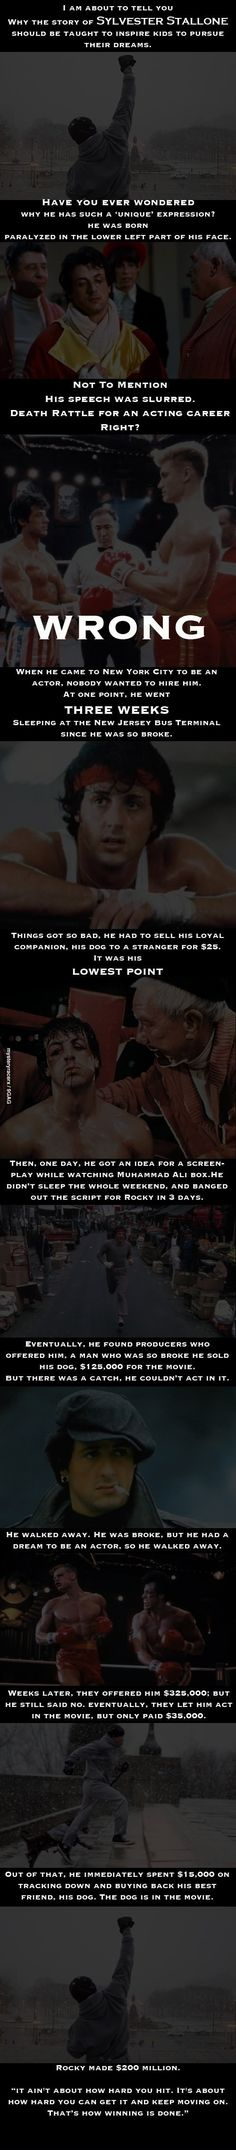 Sylvester Stallone's story - Pretty amazing!